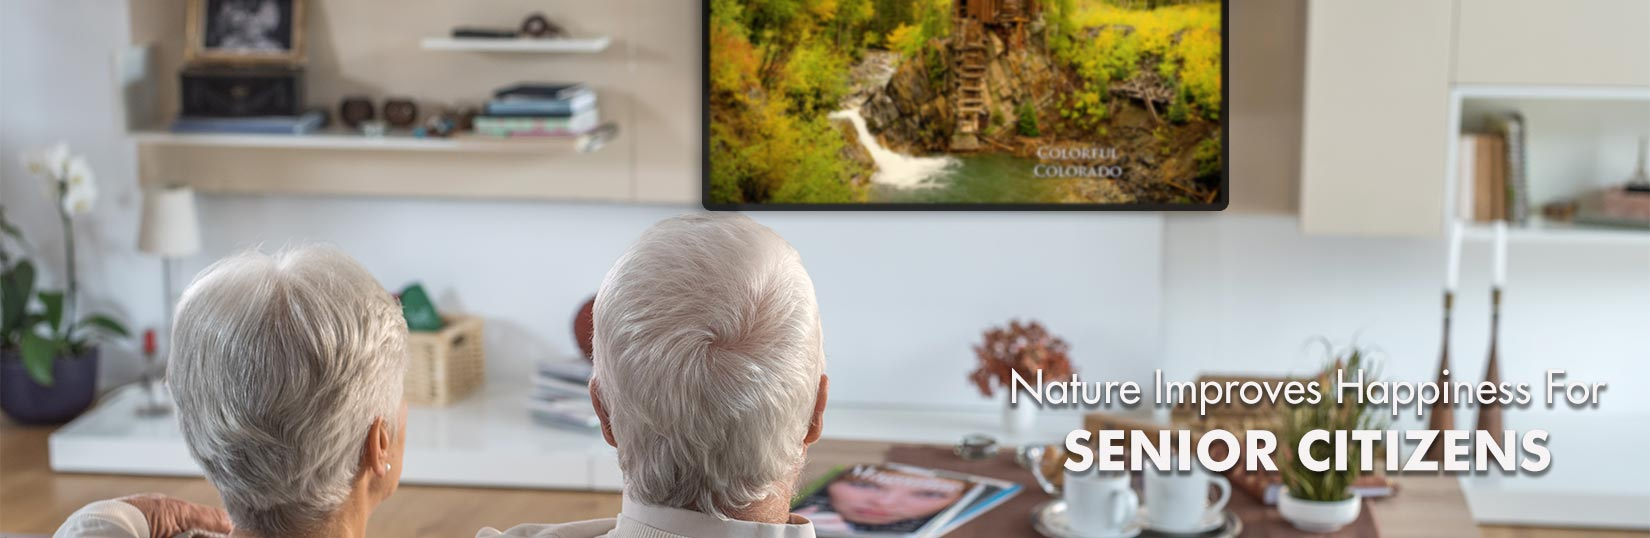 Senior Citizens Watching Nature Video On Television